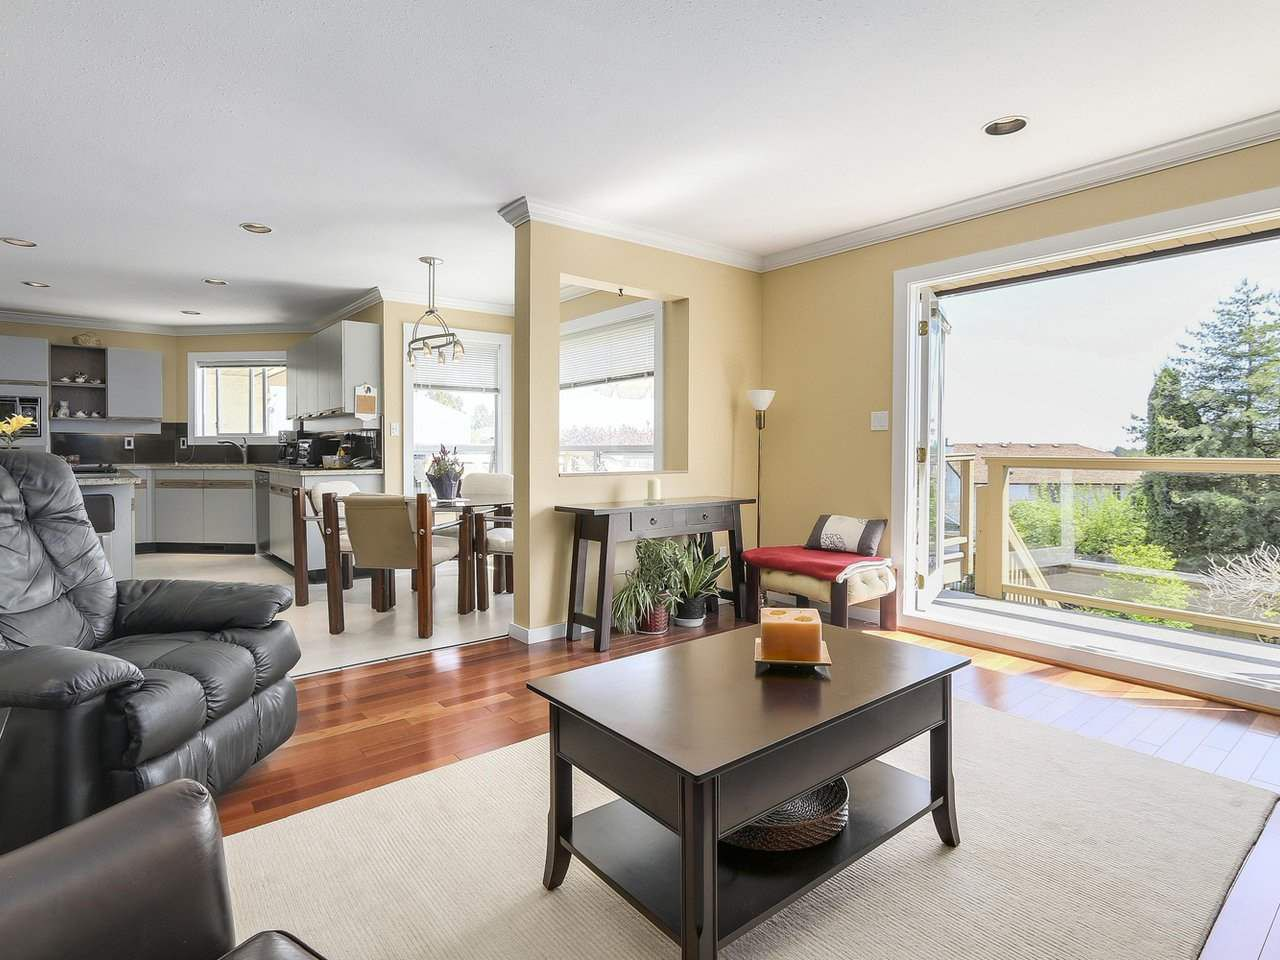 Photo 10: Photos: 737 East 29th Street, North Vancouver